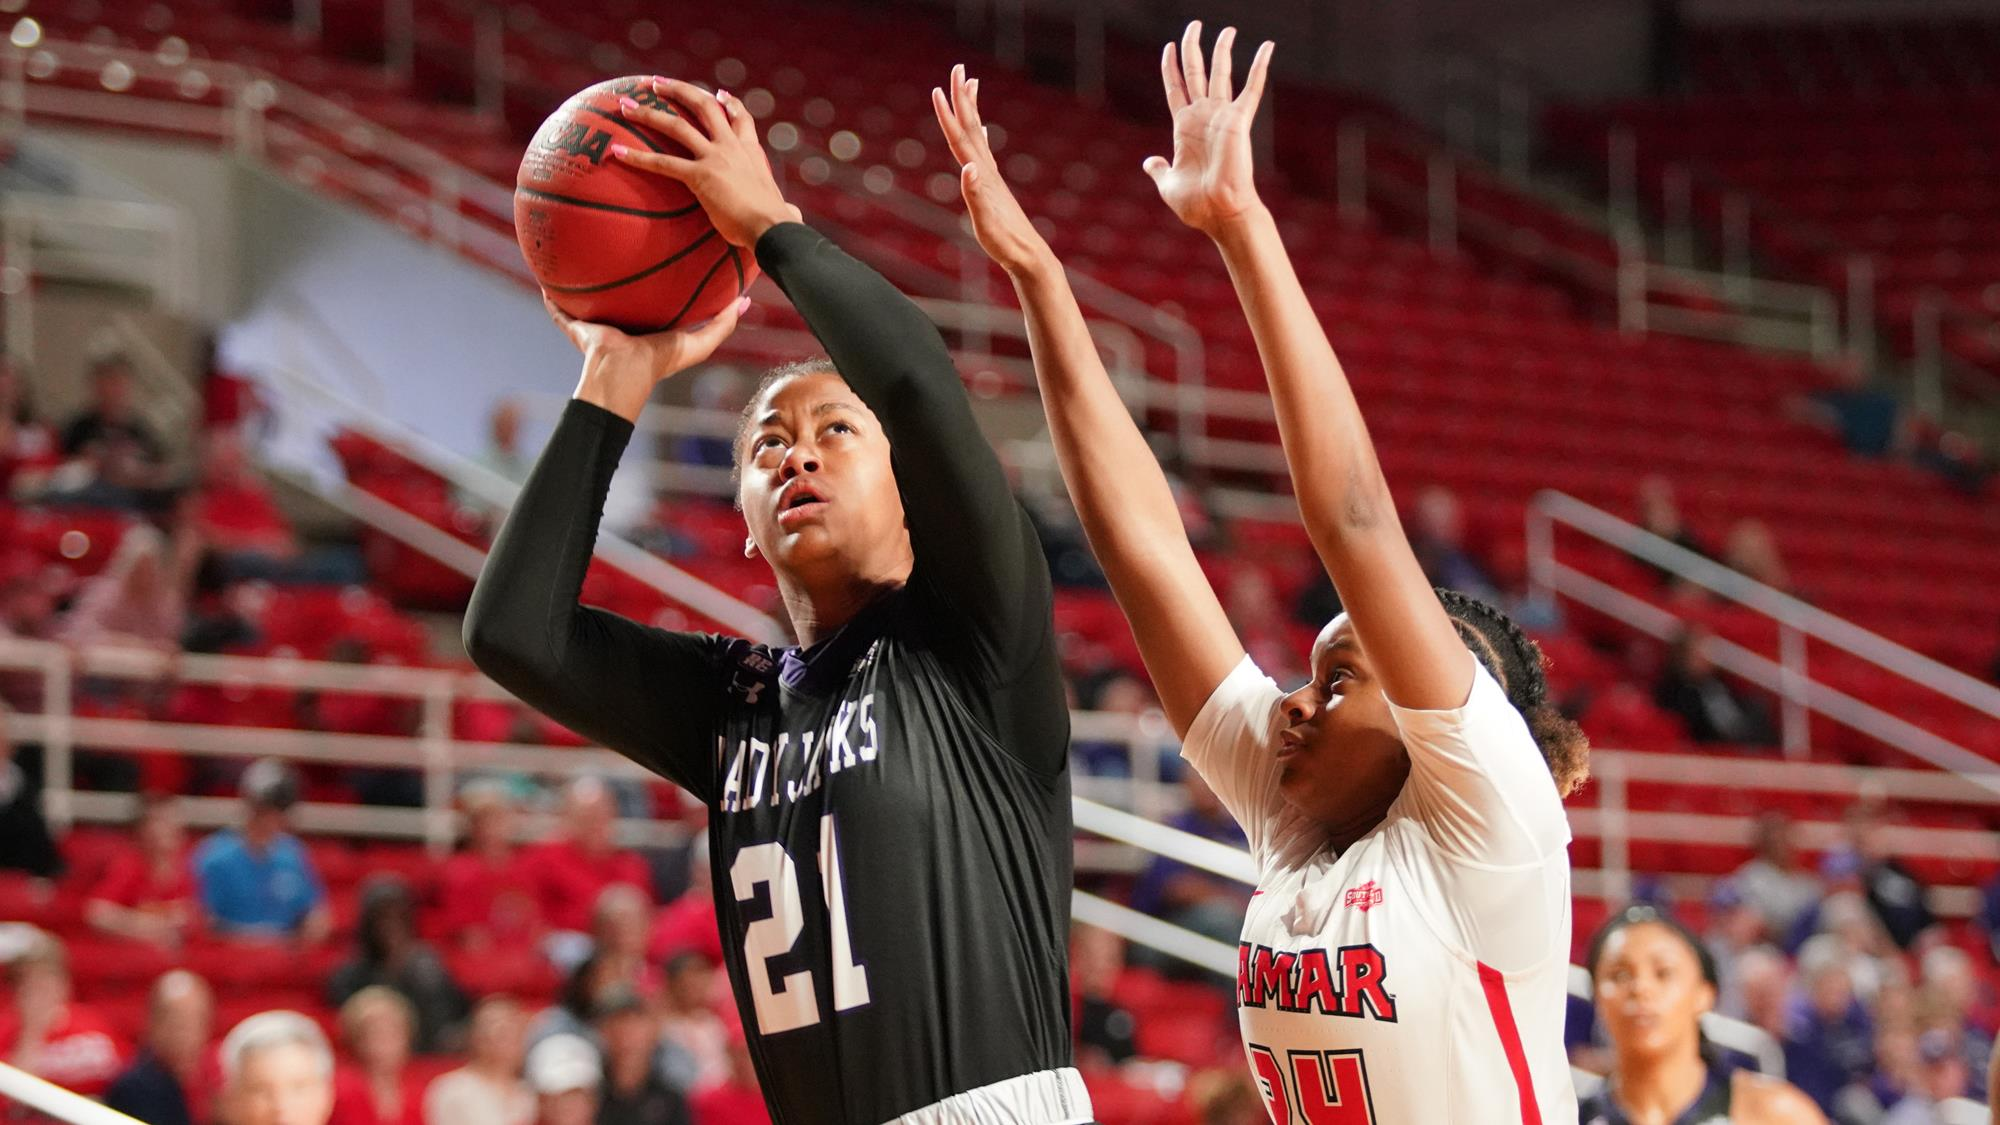 Johnson's Late Free Throw Lifts SFA Over Spirited Lamar Squad, 54-53